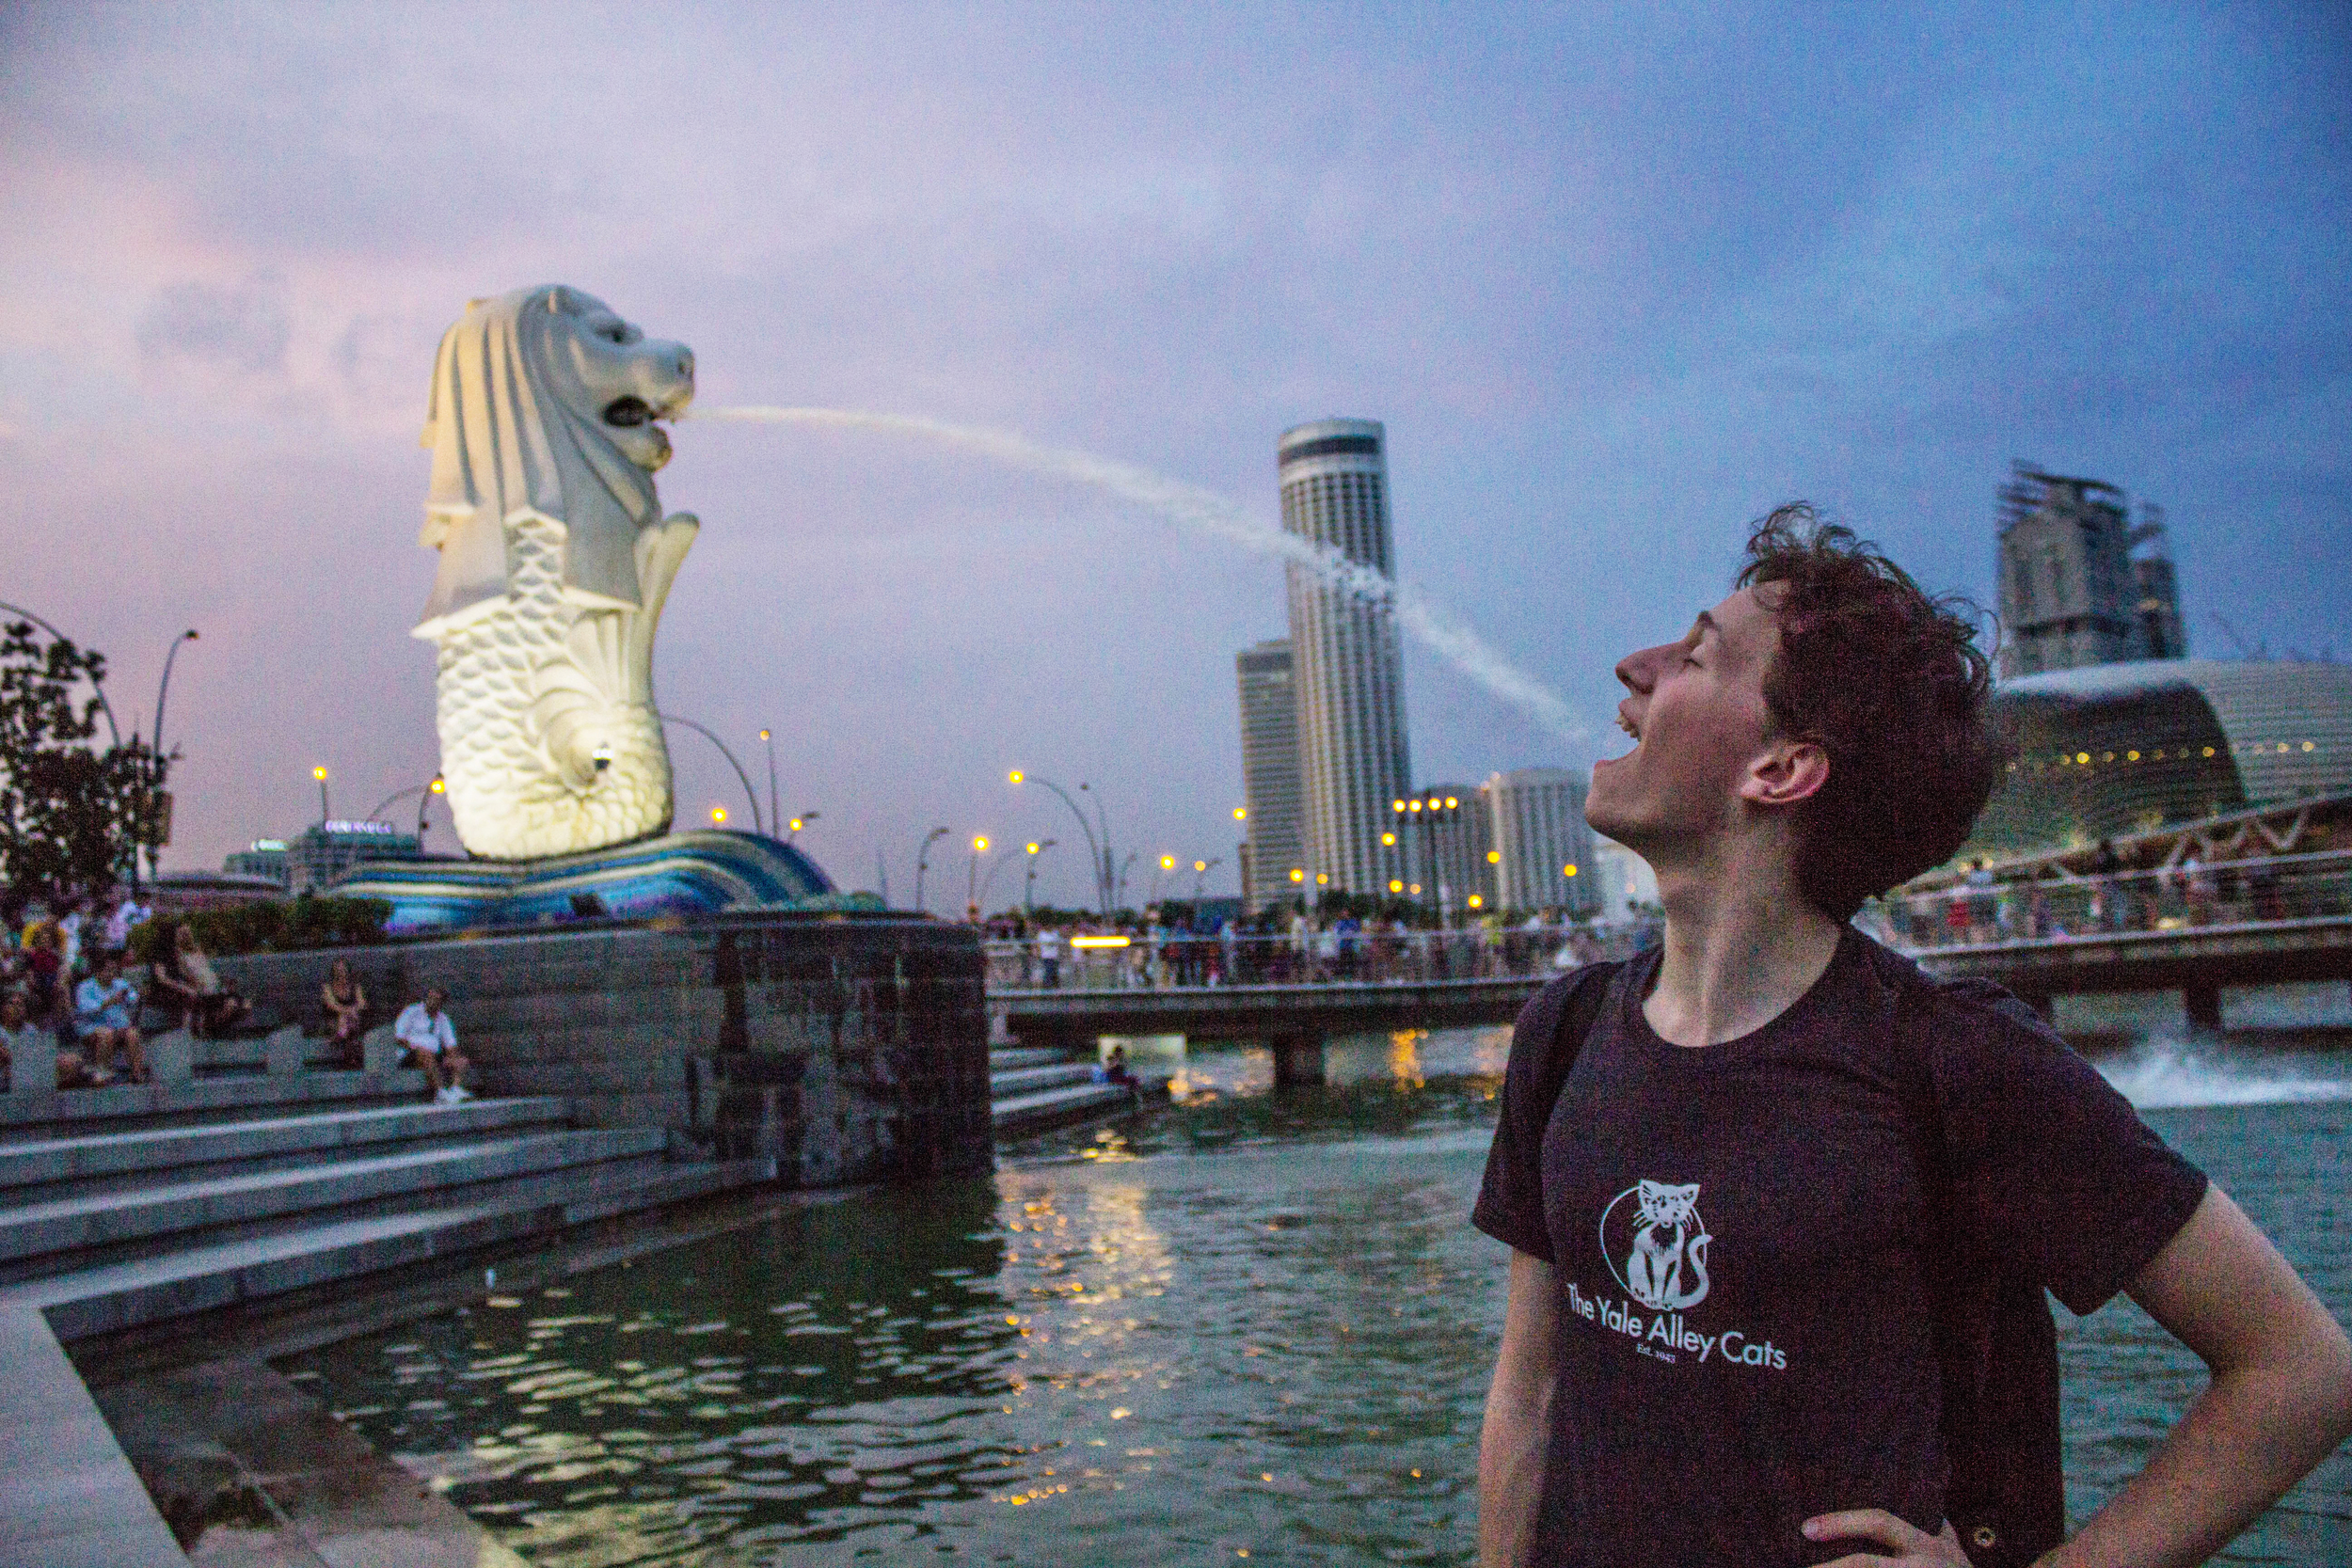 Not even a stroll through the iconic Merlion Park can quench our thirst for Singapore, on our last day of tour!